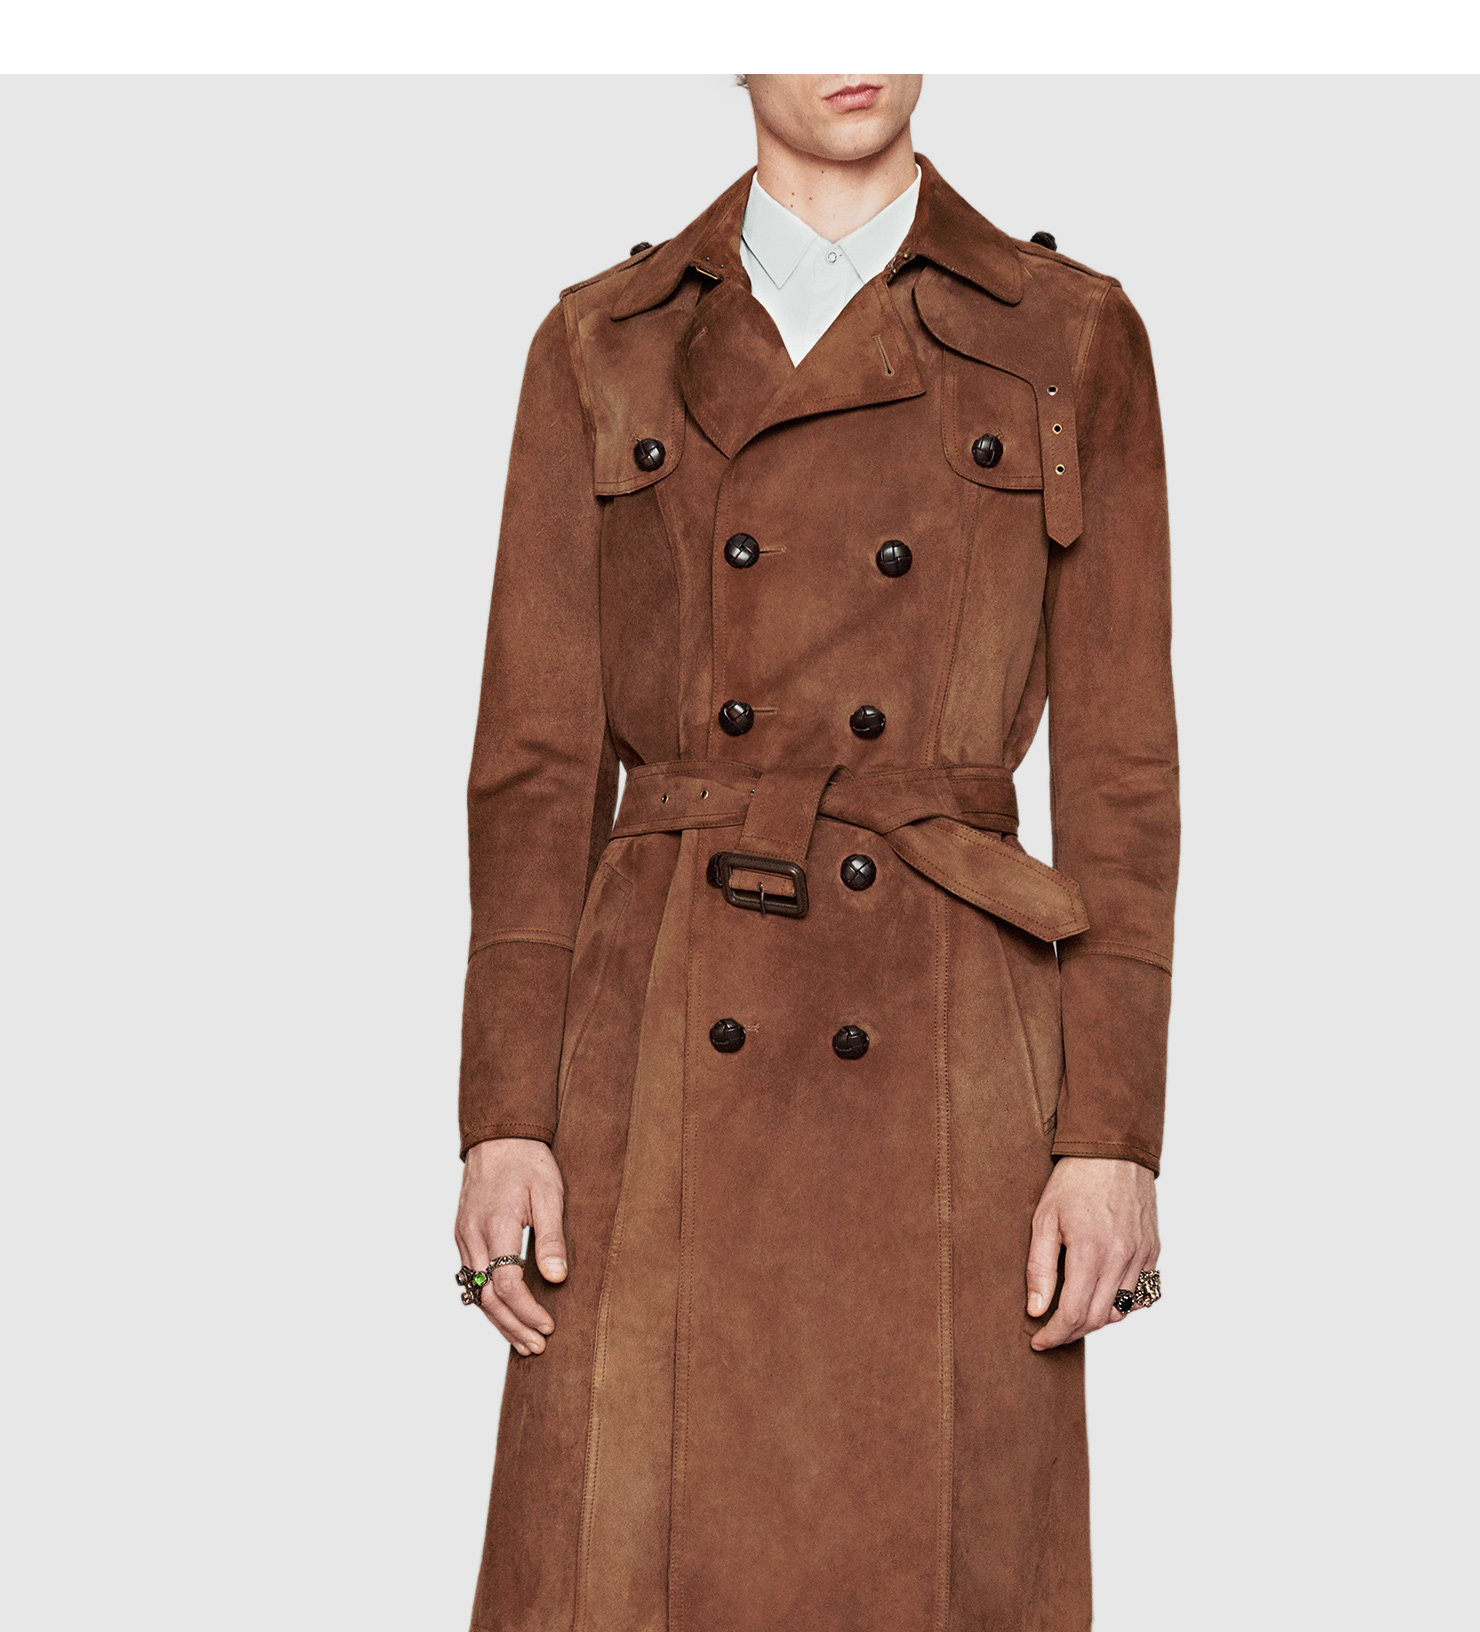 fab92c890 Gucci Suede Trench Coat in Brown for Men - Lyst